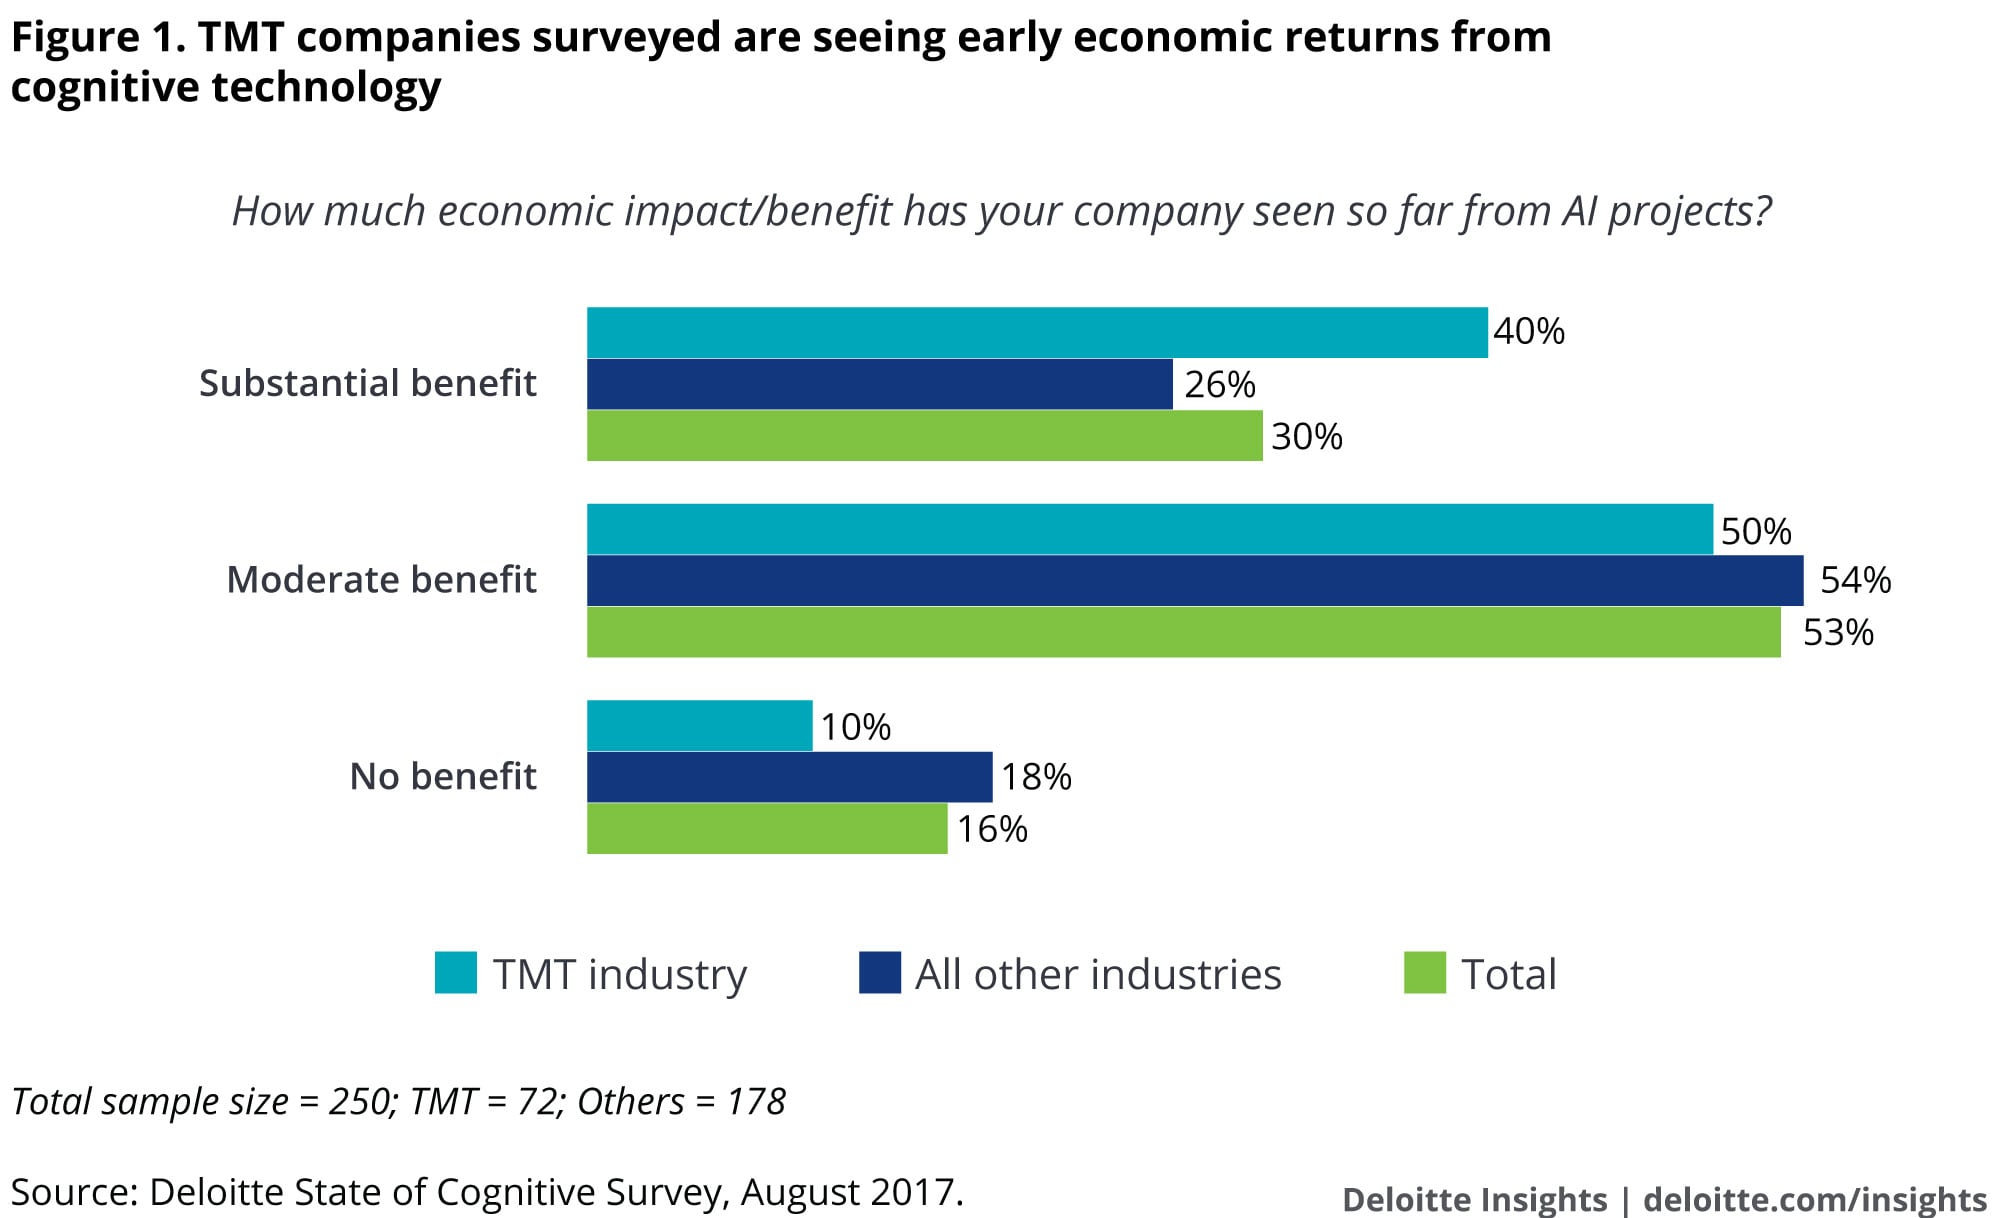 TMT companies surveyed are seeing early economic returns from cognitive